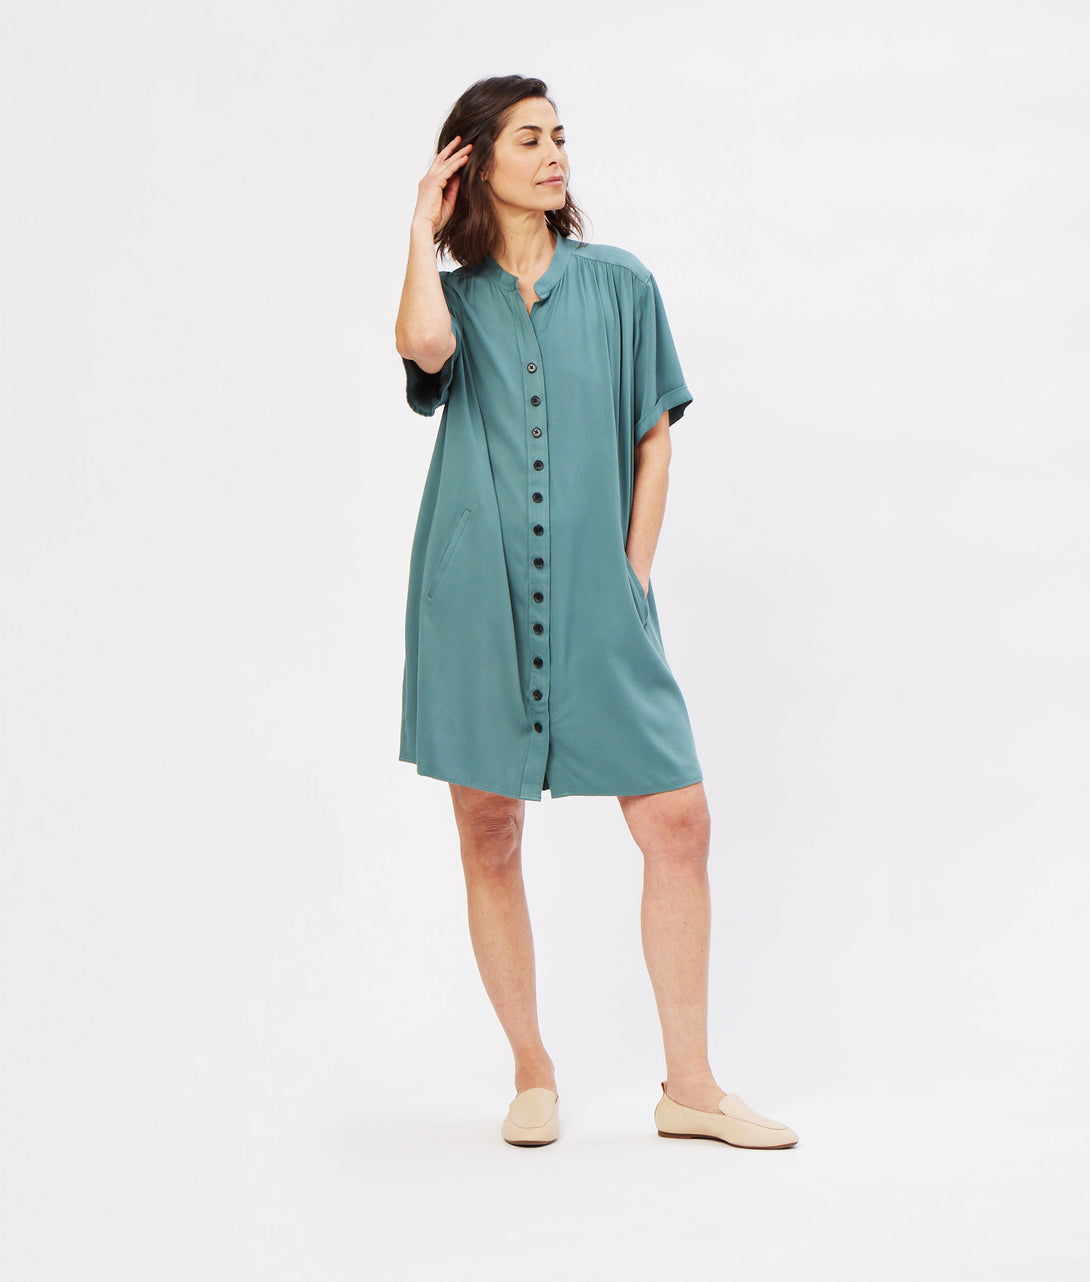 The Frieda Essential Day Dress in sliver pine